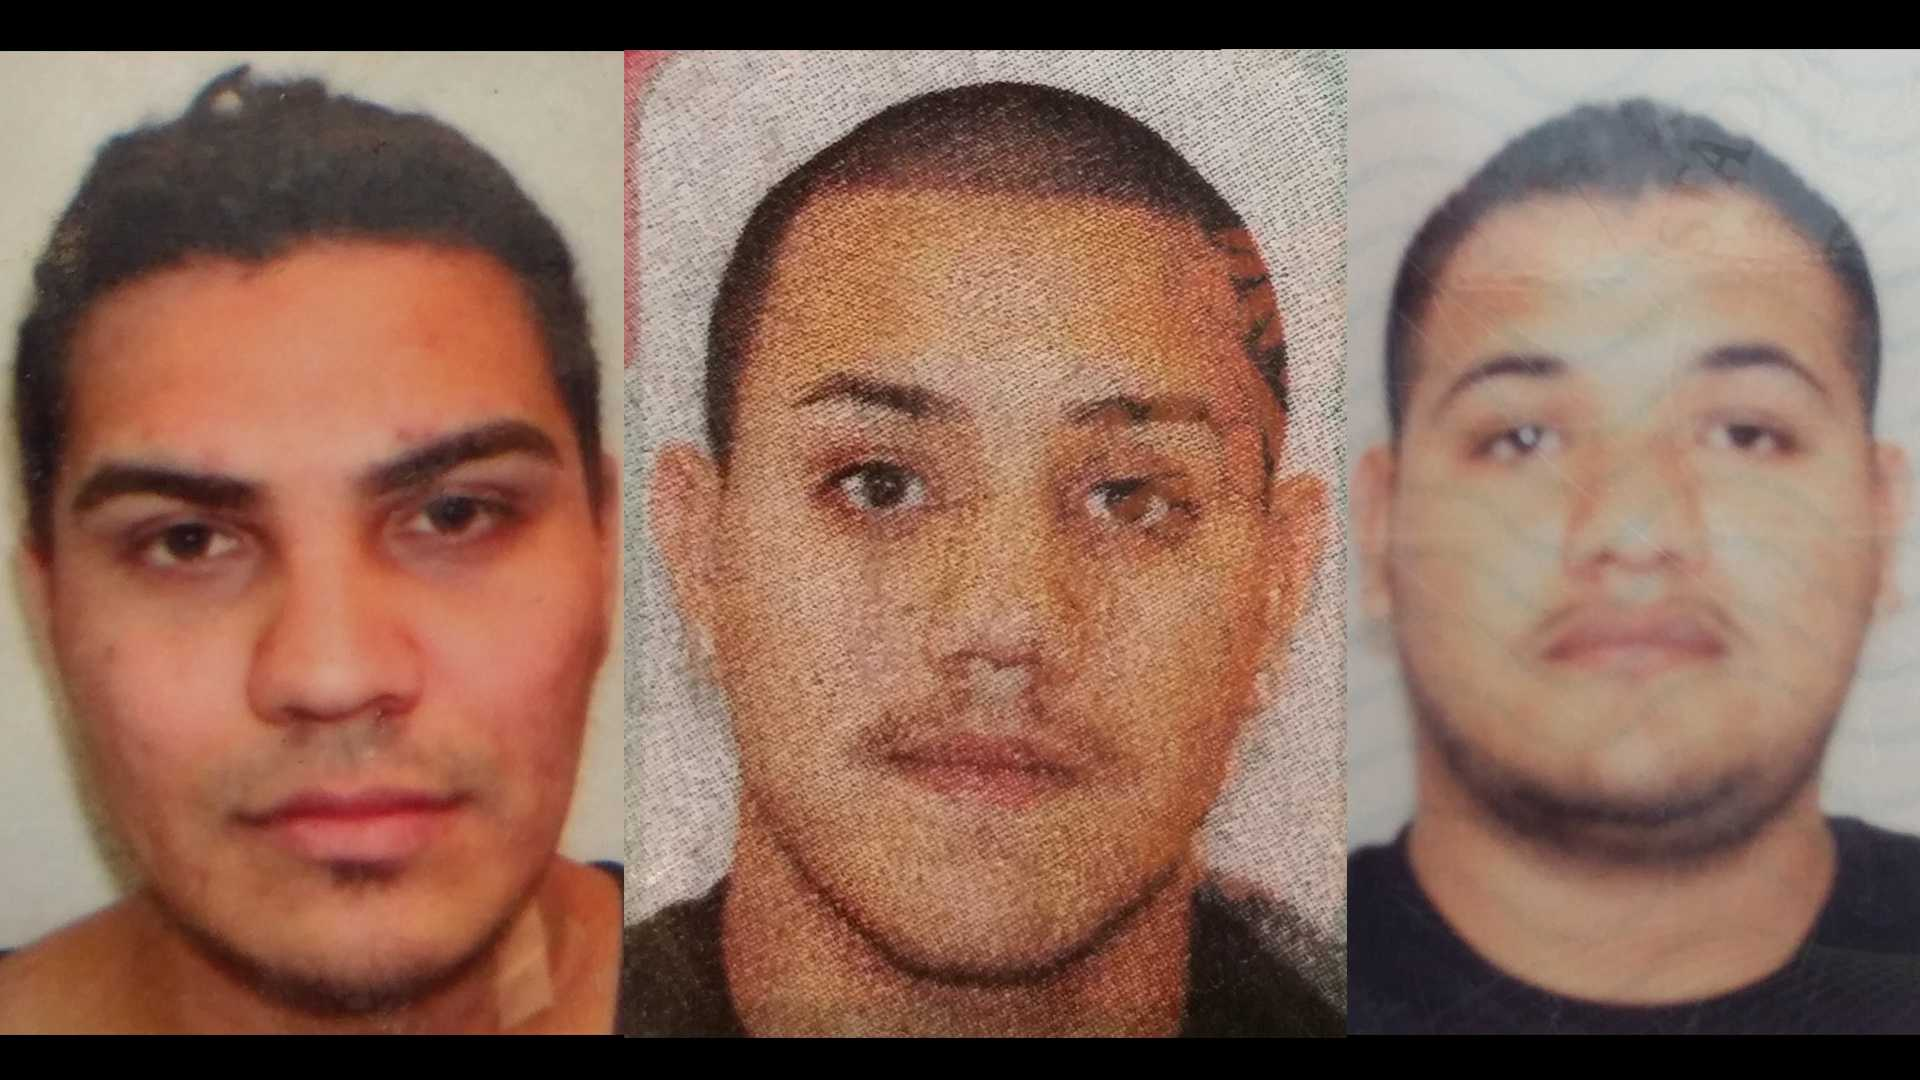 Ruben Villejas, 26 (left), Dimas Licea Ortiz, 22 (middle), Jose Luis Ortiz, 20 (right), are at large, the Placer County Sheriff's Office said.